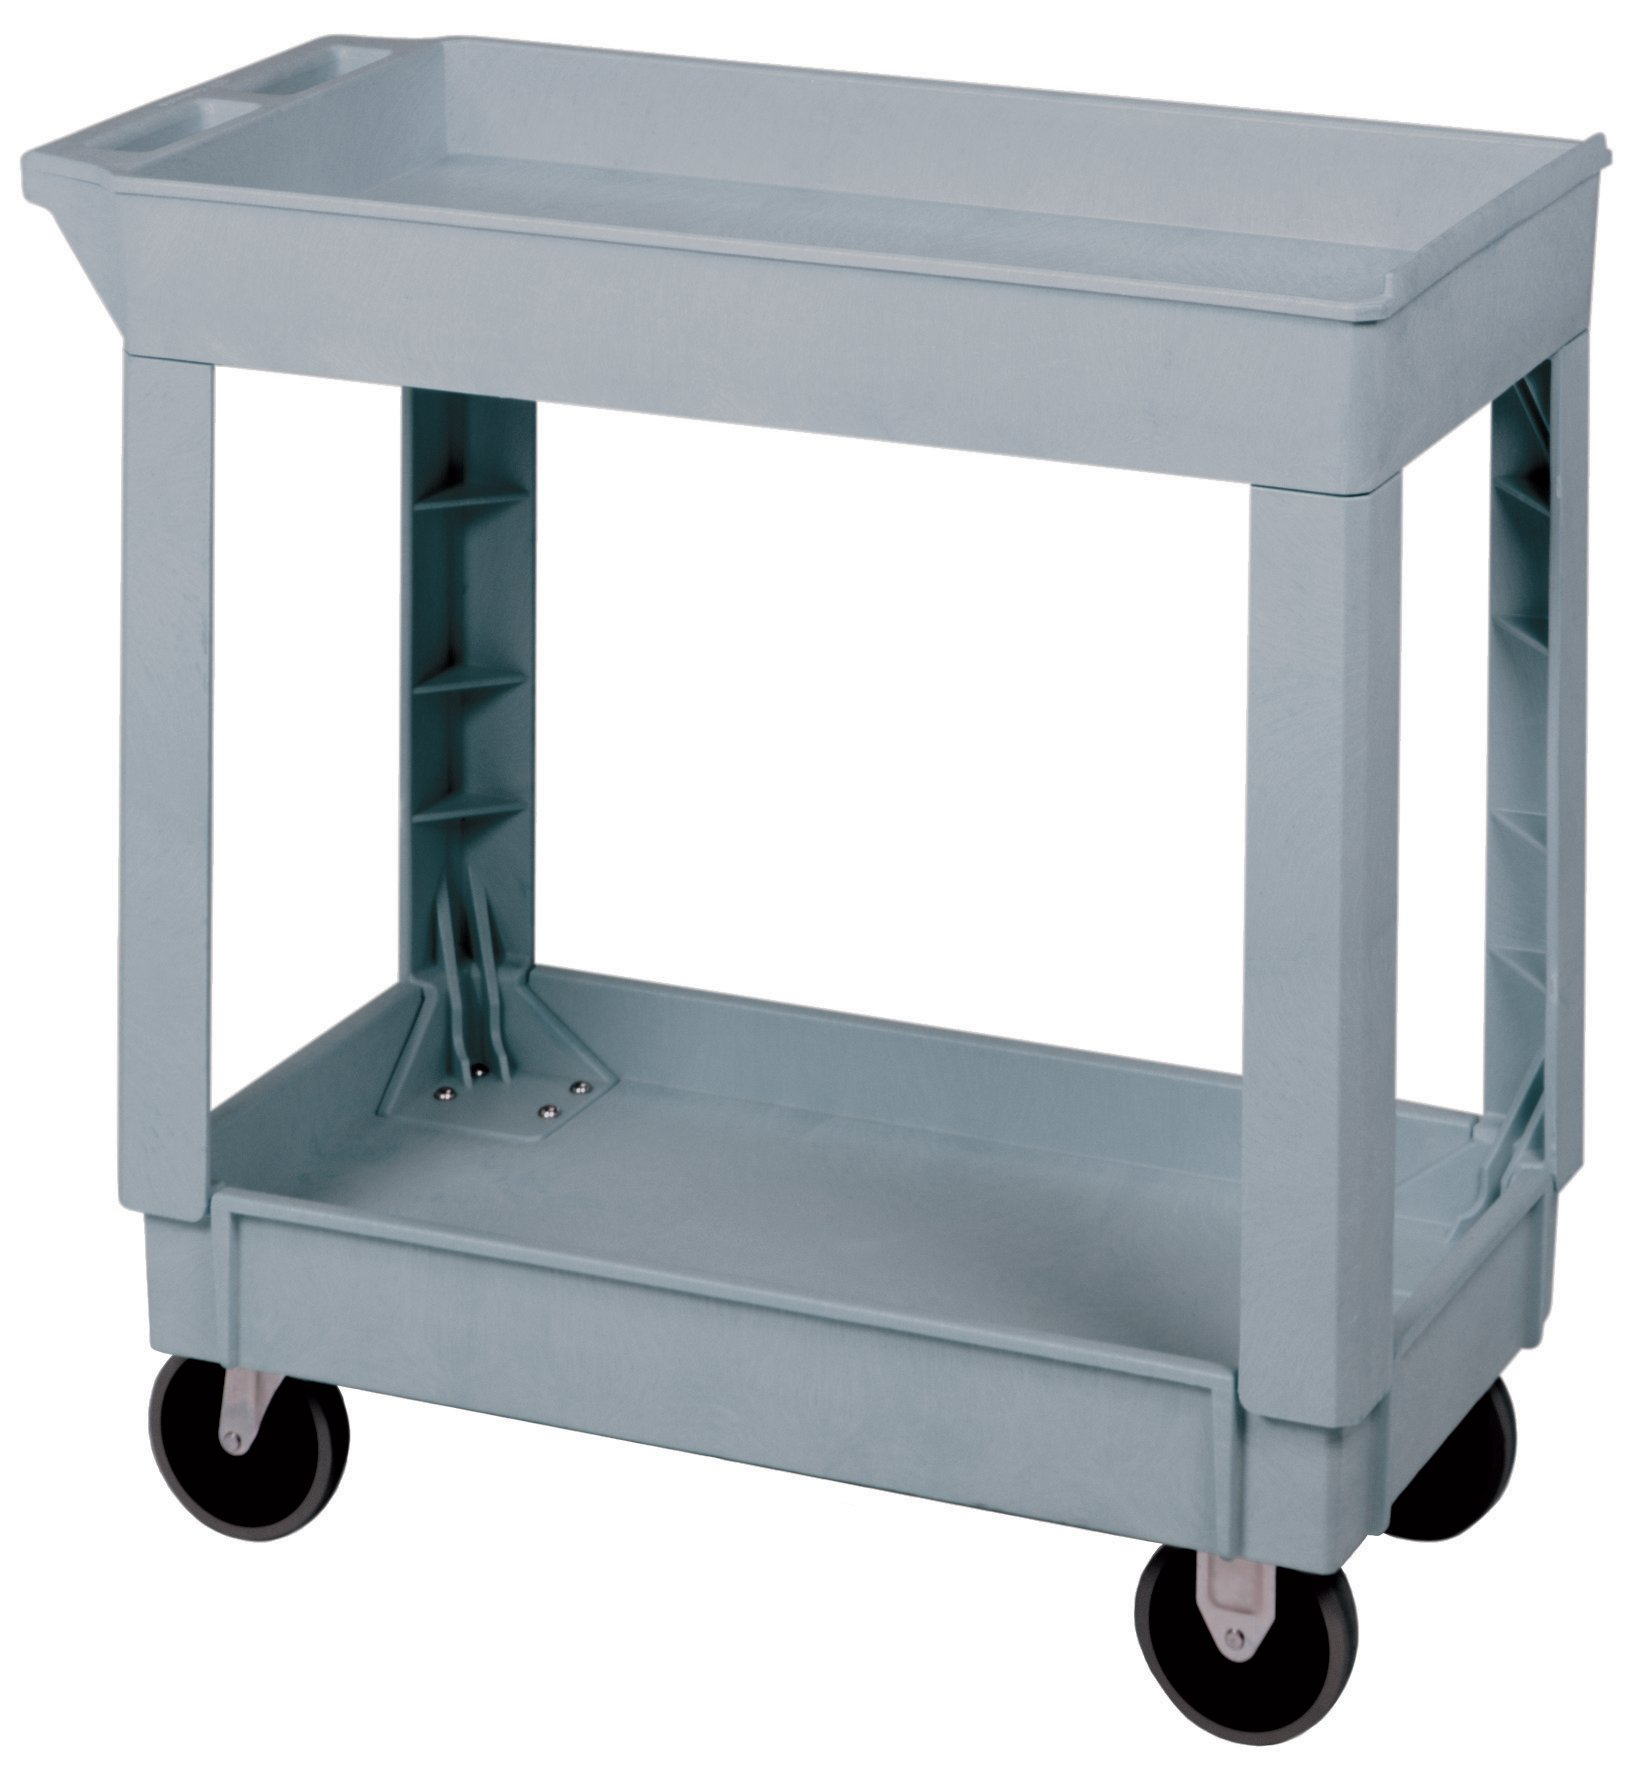 Continental Commercial All-Purpose Lab Cart, 34-3/8'' x 17-1/2'' x 33'' Size, 5'' Rubber Casters by Continental Commercial (Image #1)